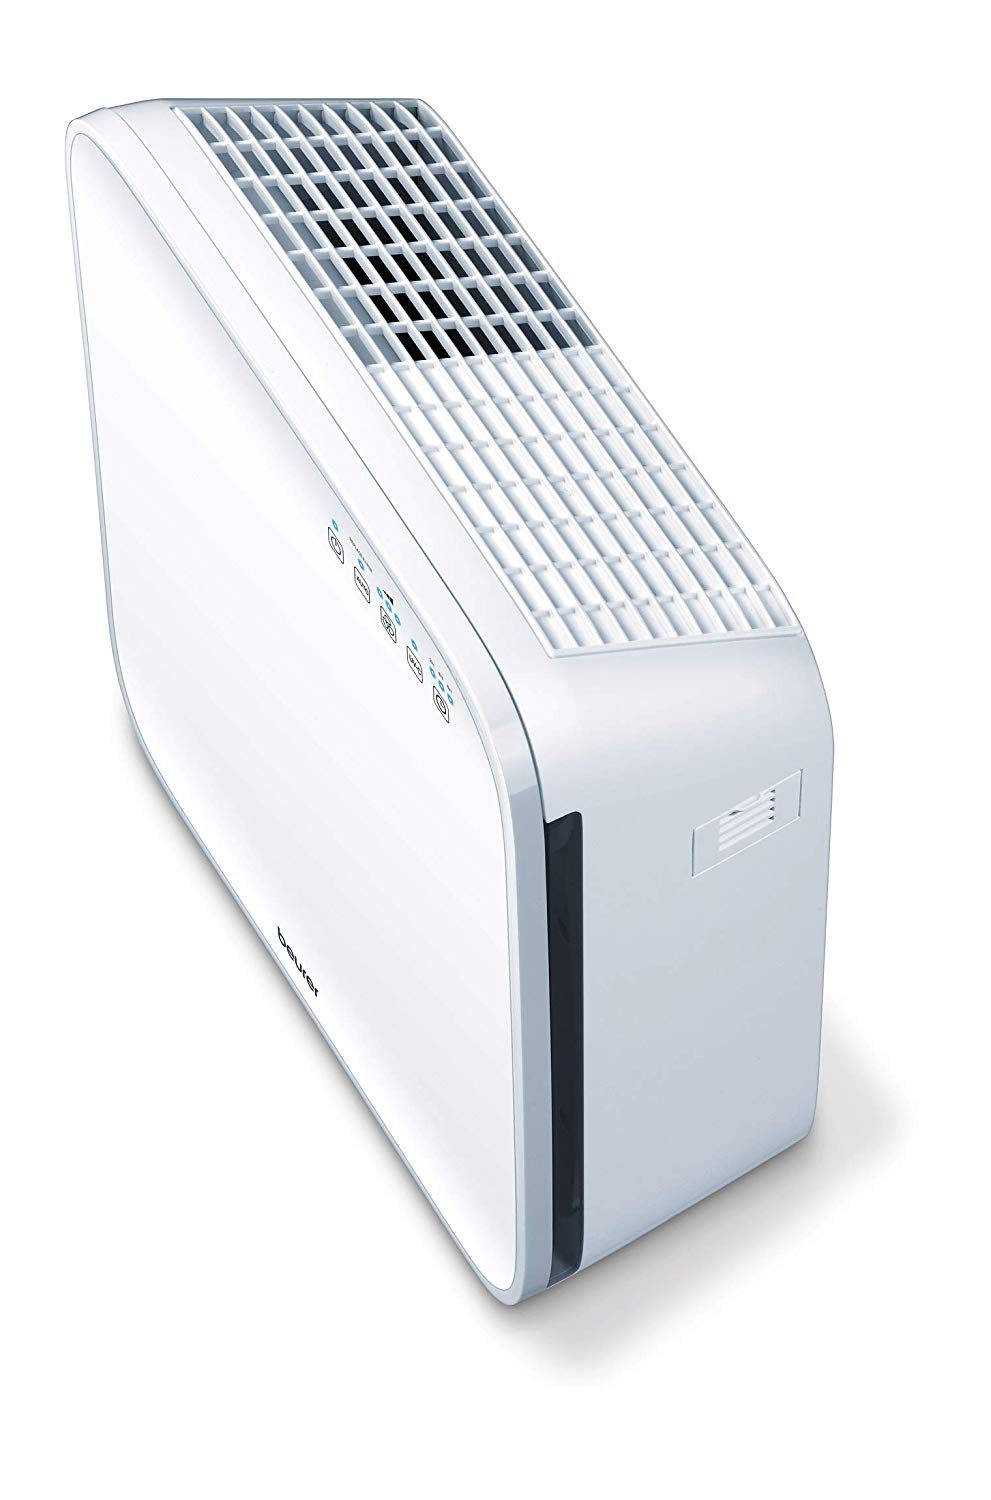 Air Purifier with 3 Layered Filter System LR310 | Beurer